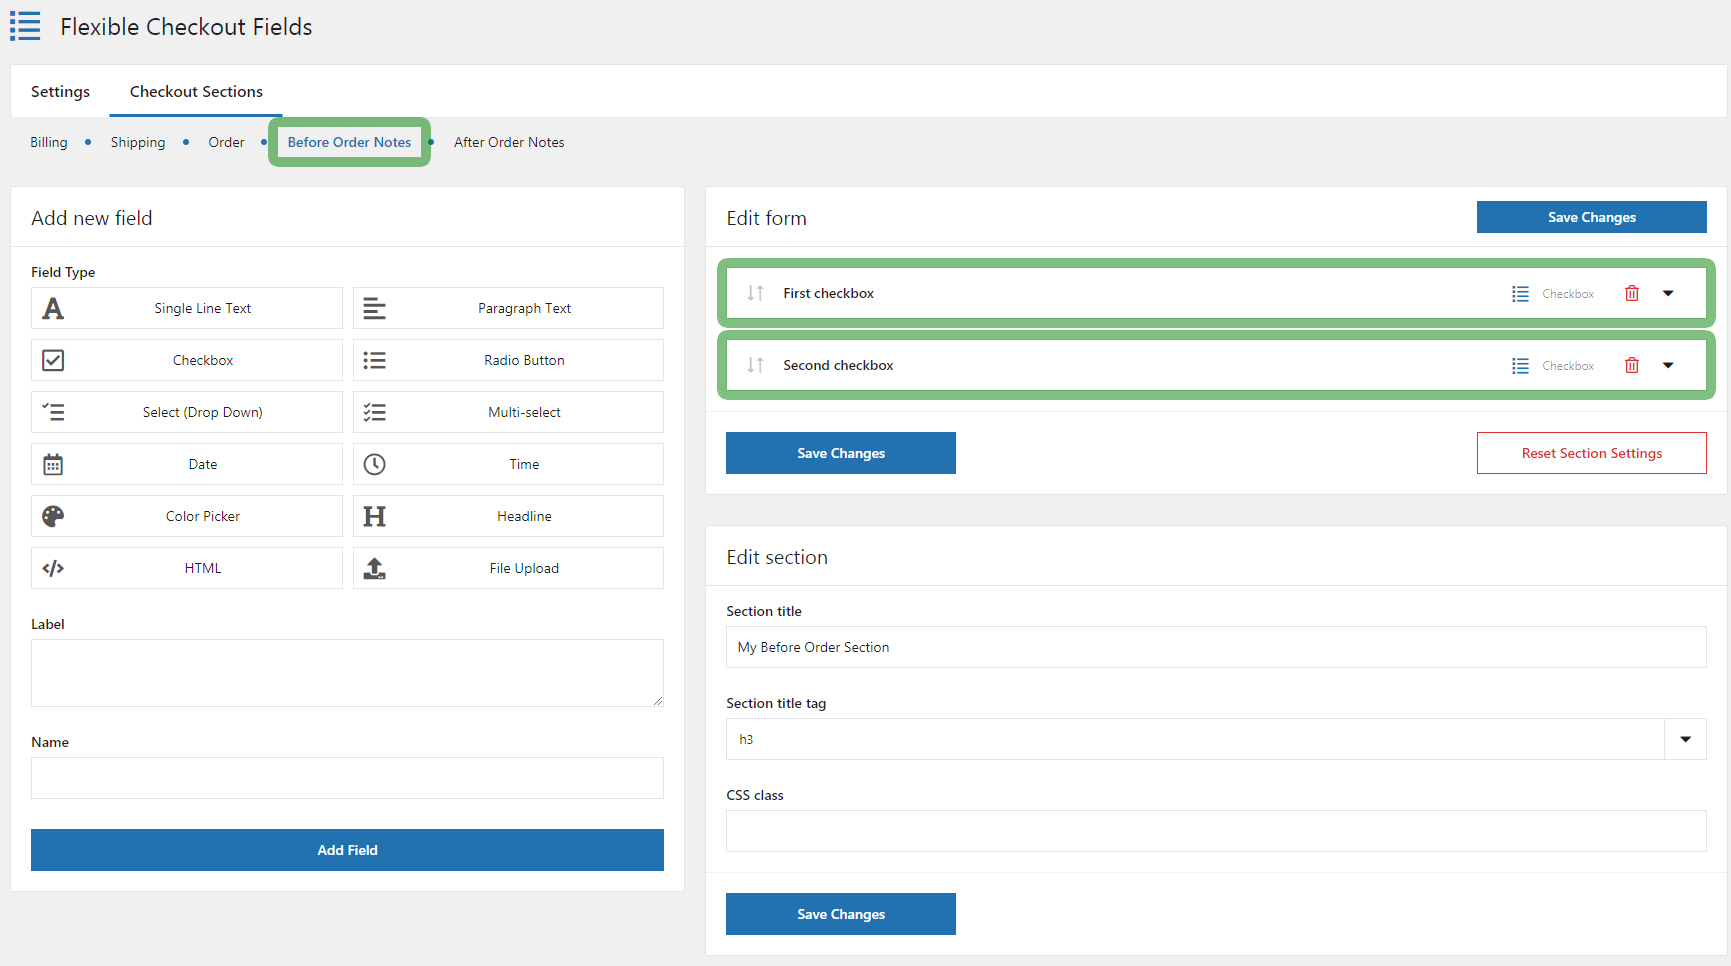 Before Order Notes - settings